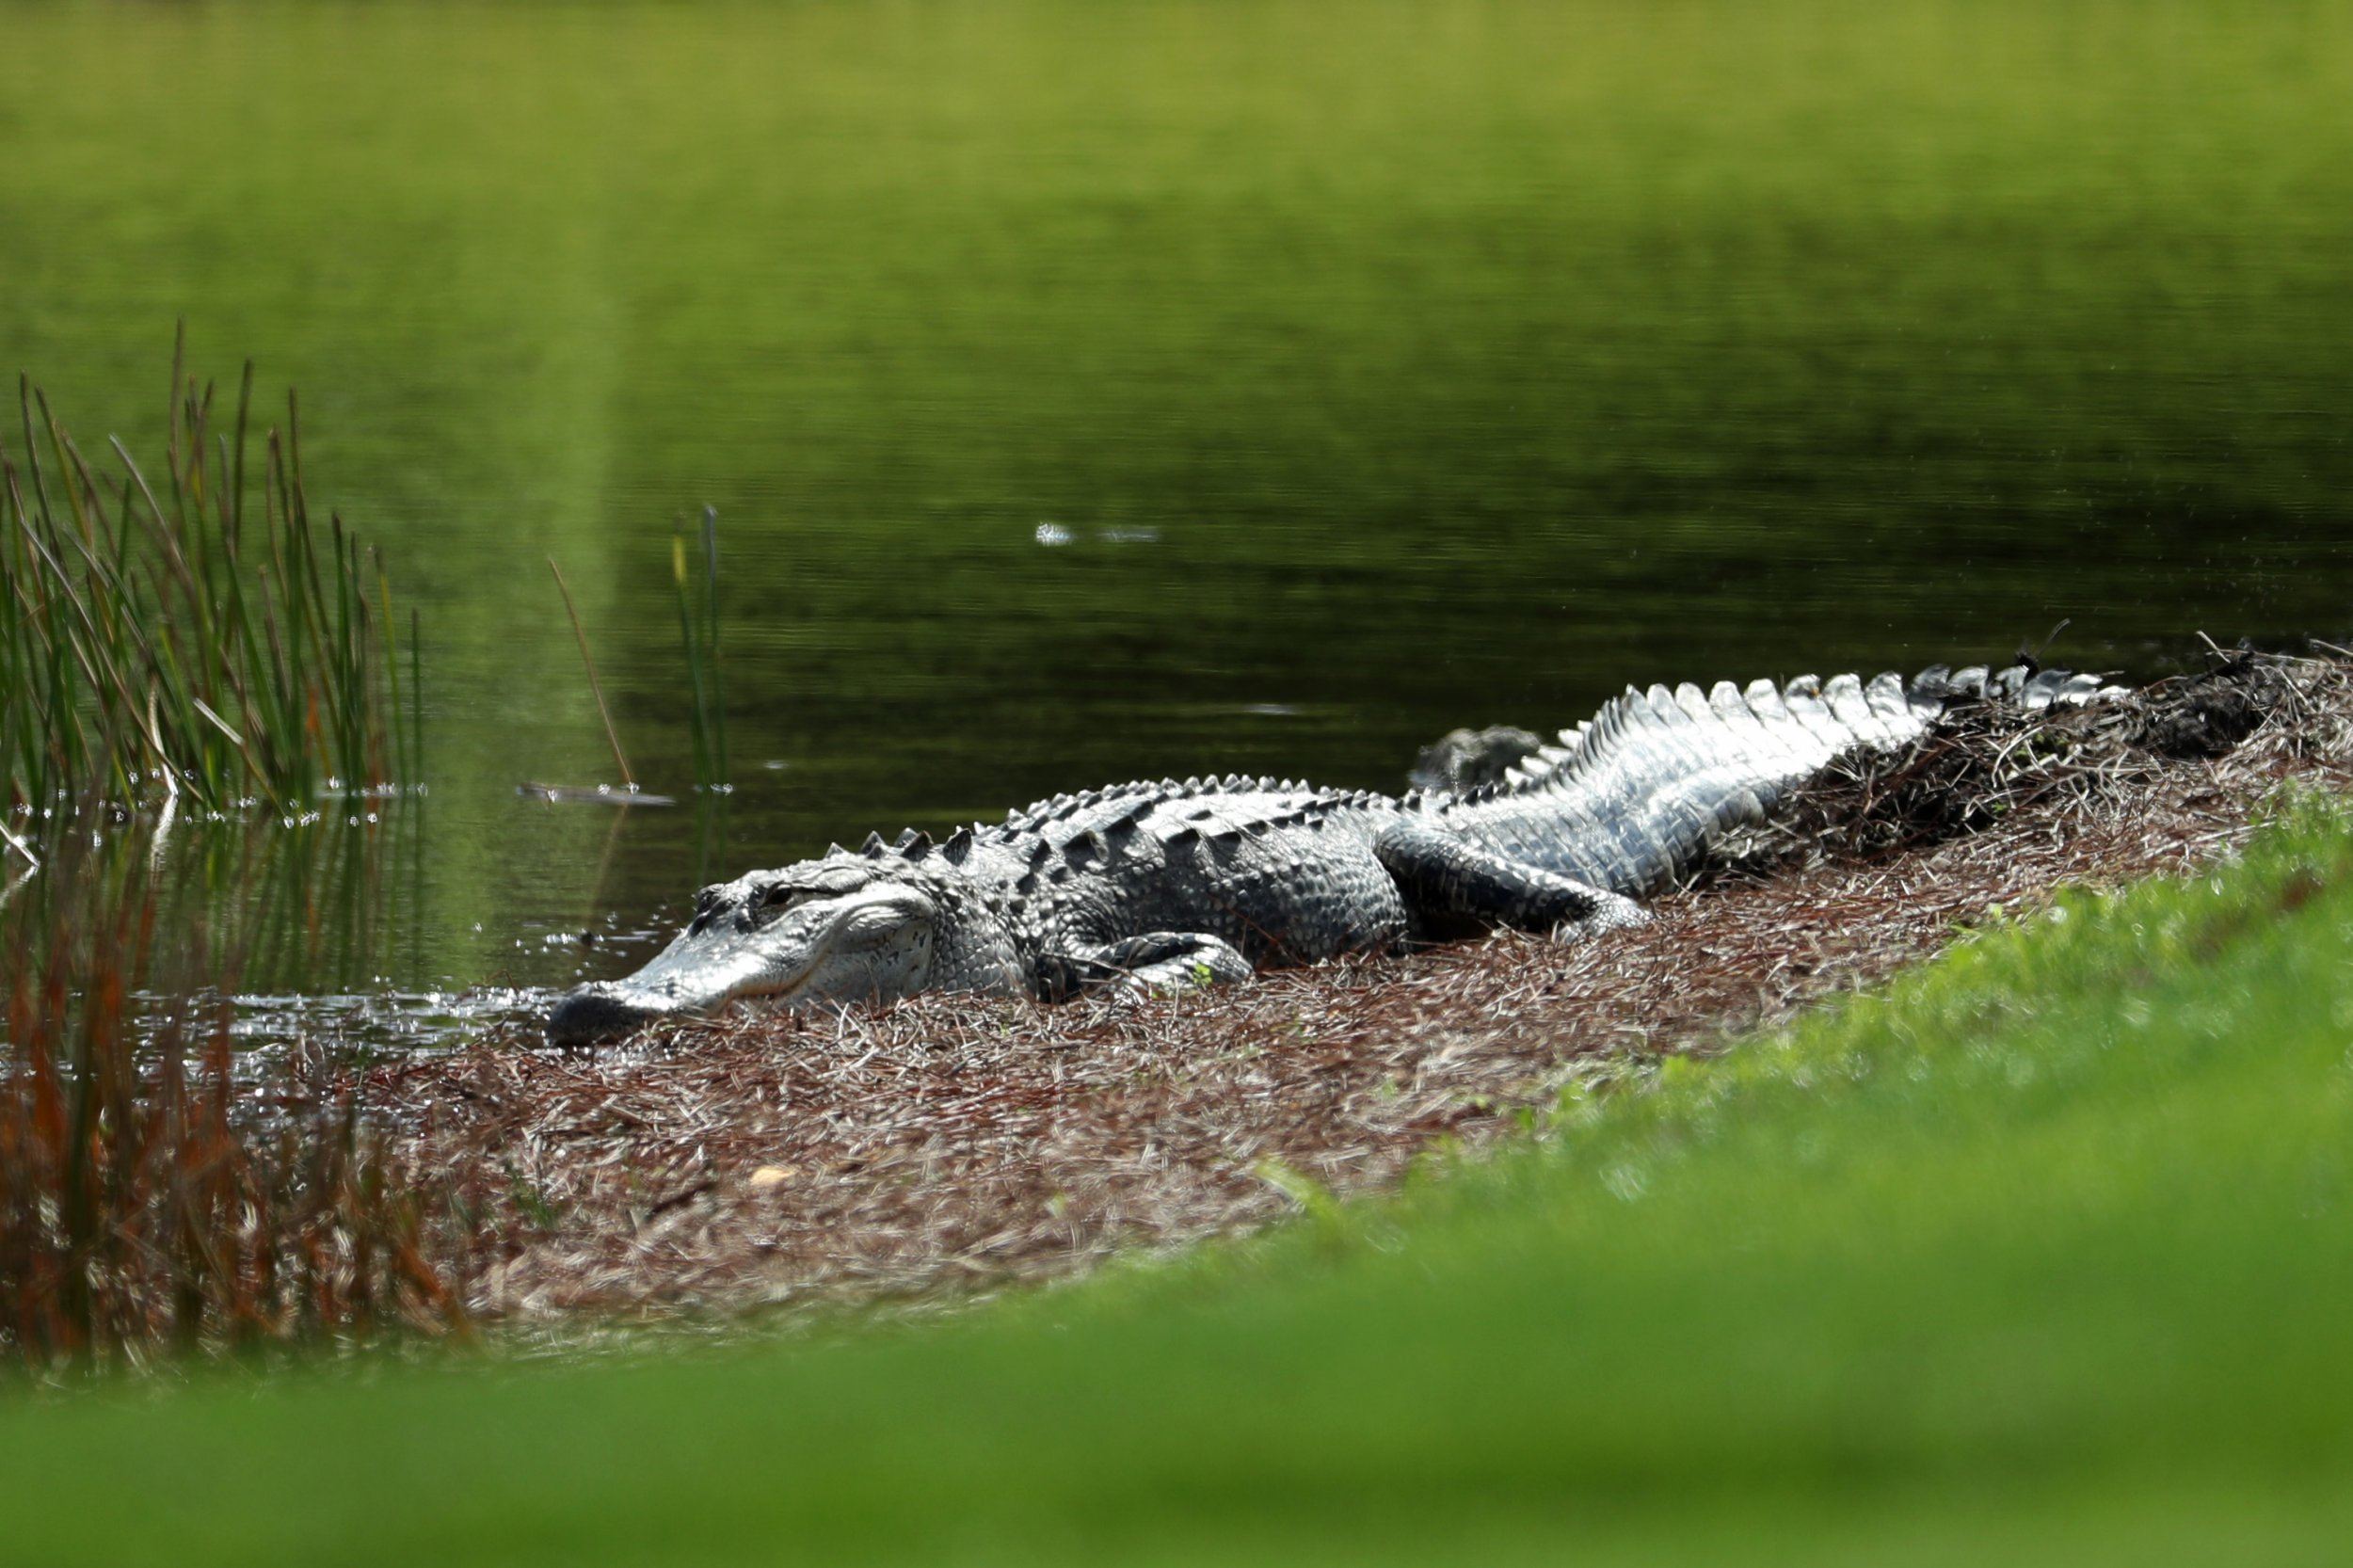 How to Survive an Alligator Attack: Emulate This Florida 10-Year-Old